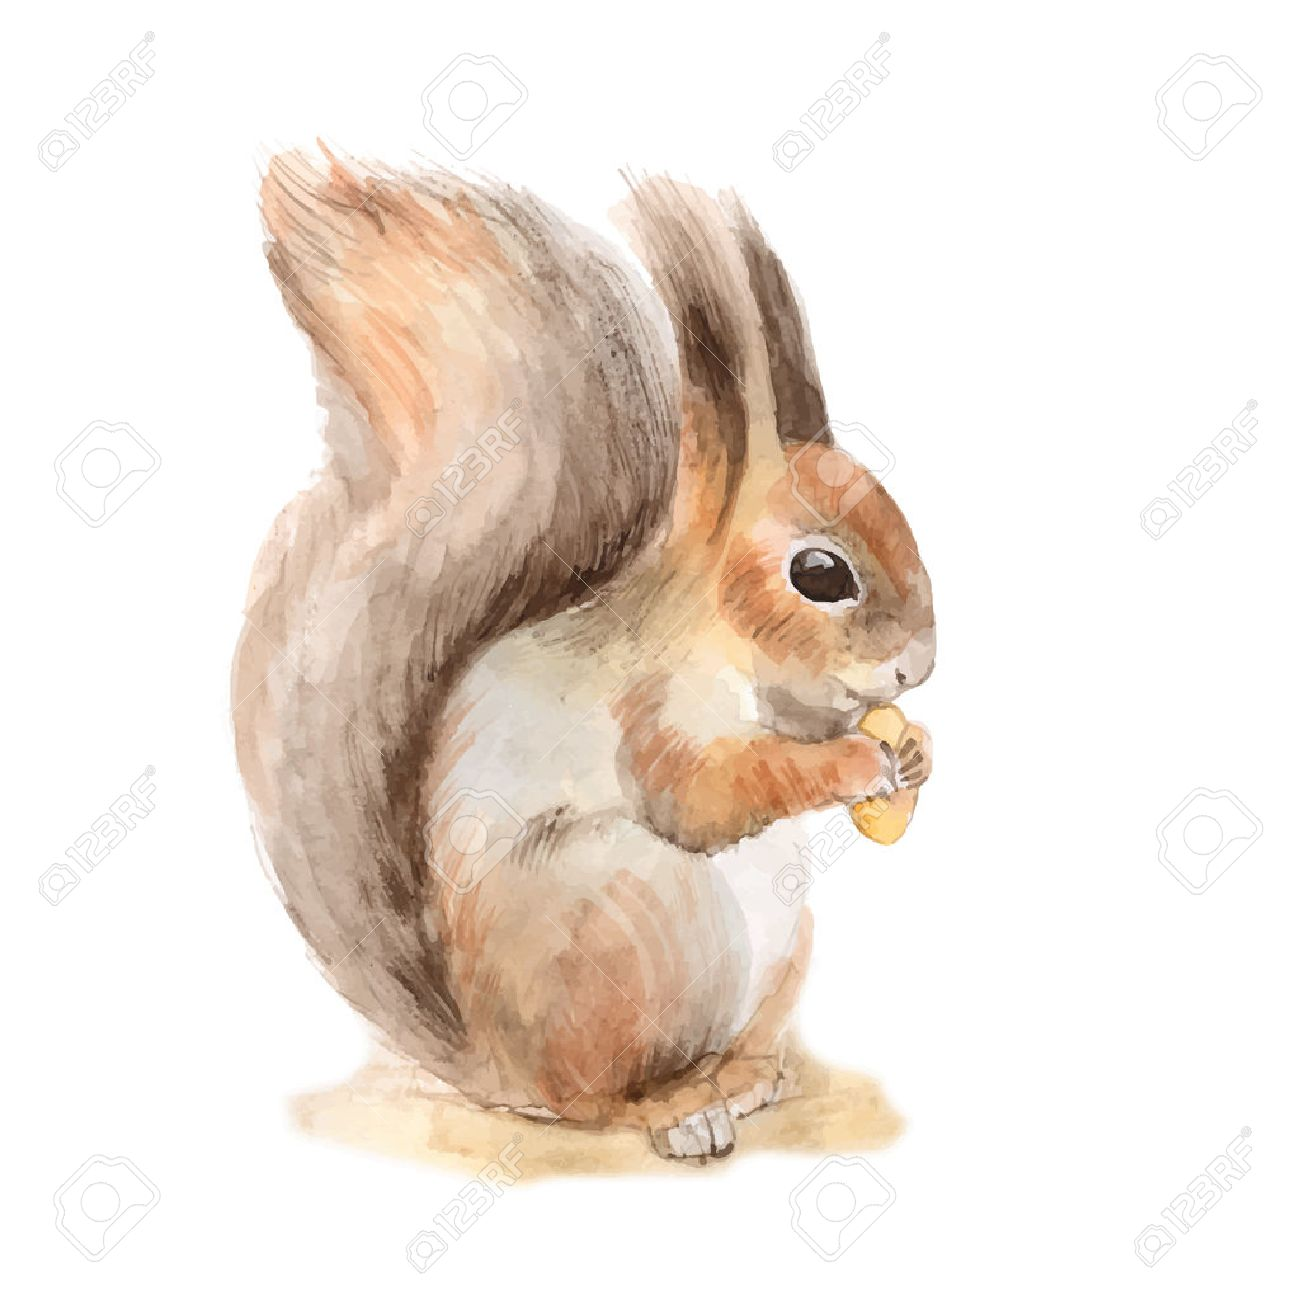 Squirrel with a nut. Hand drawn. Watercolor illustration in vector - 50573457